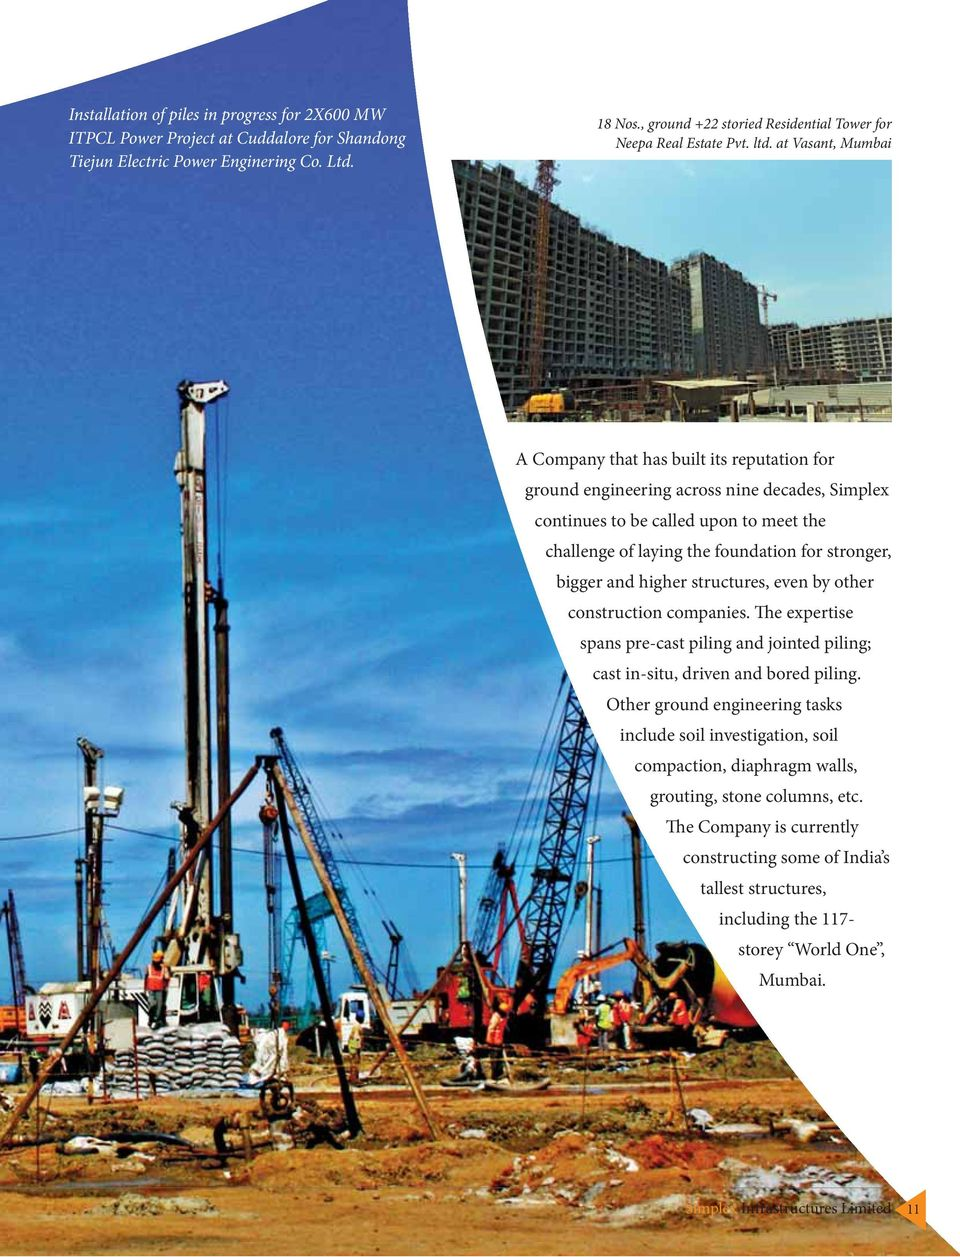 at Vasant, Mumbai A Company that has built its reputation for ground engineering across nine decades, Simplex continues to be called upon to meet the challenge of laying the foundation for stronger,